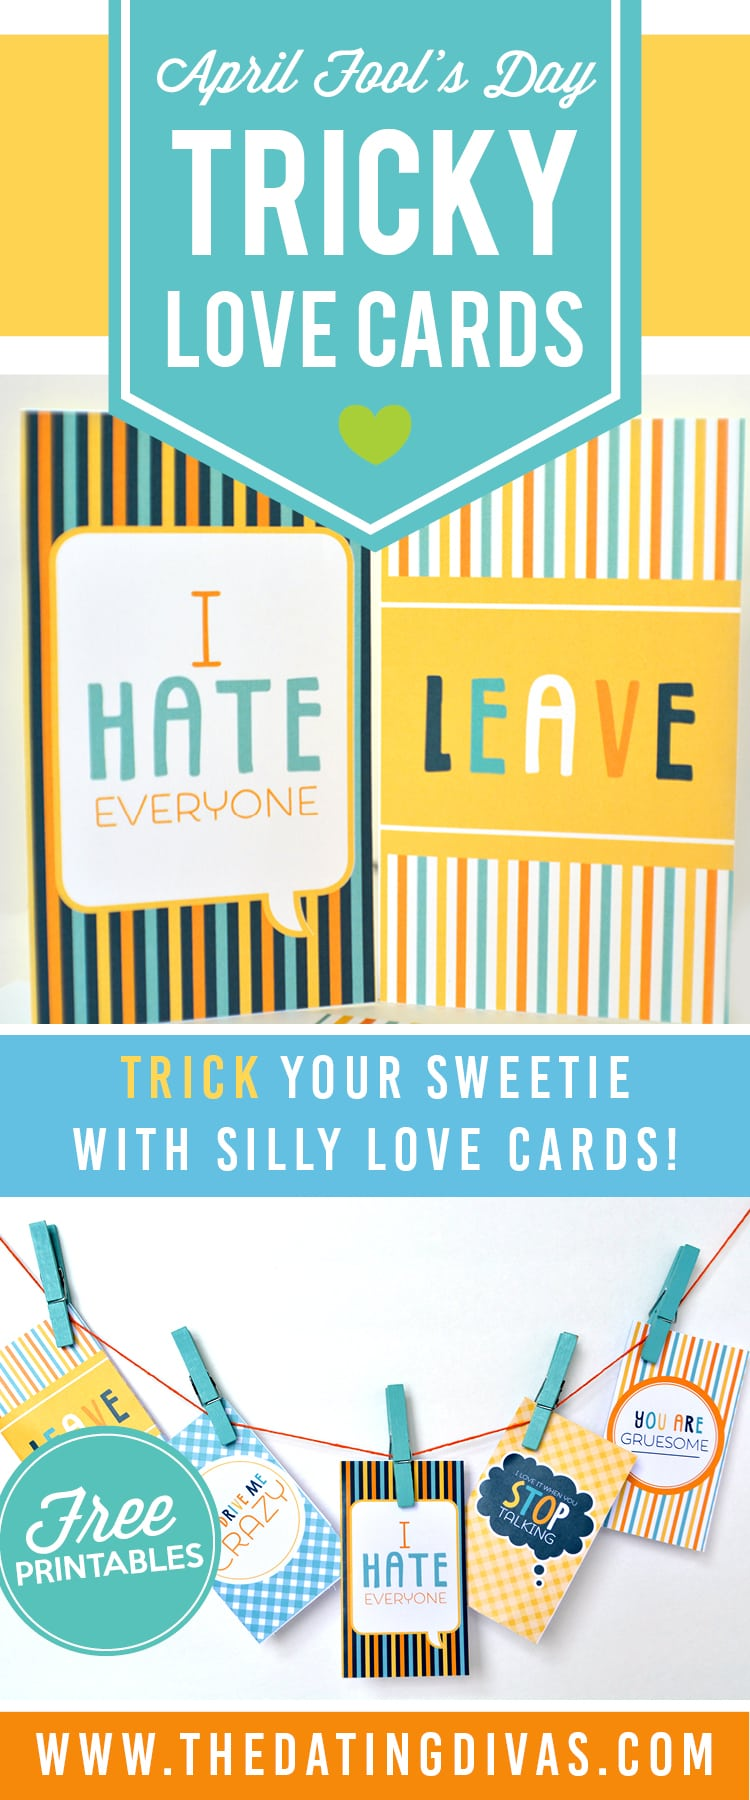 5 adorable, tricky cards for April Fool's Day!